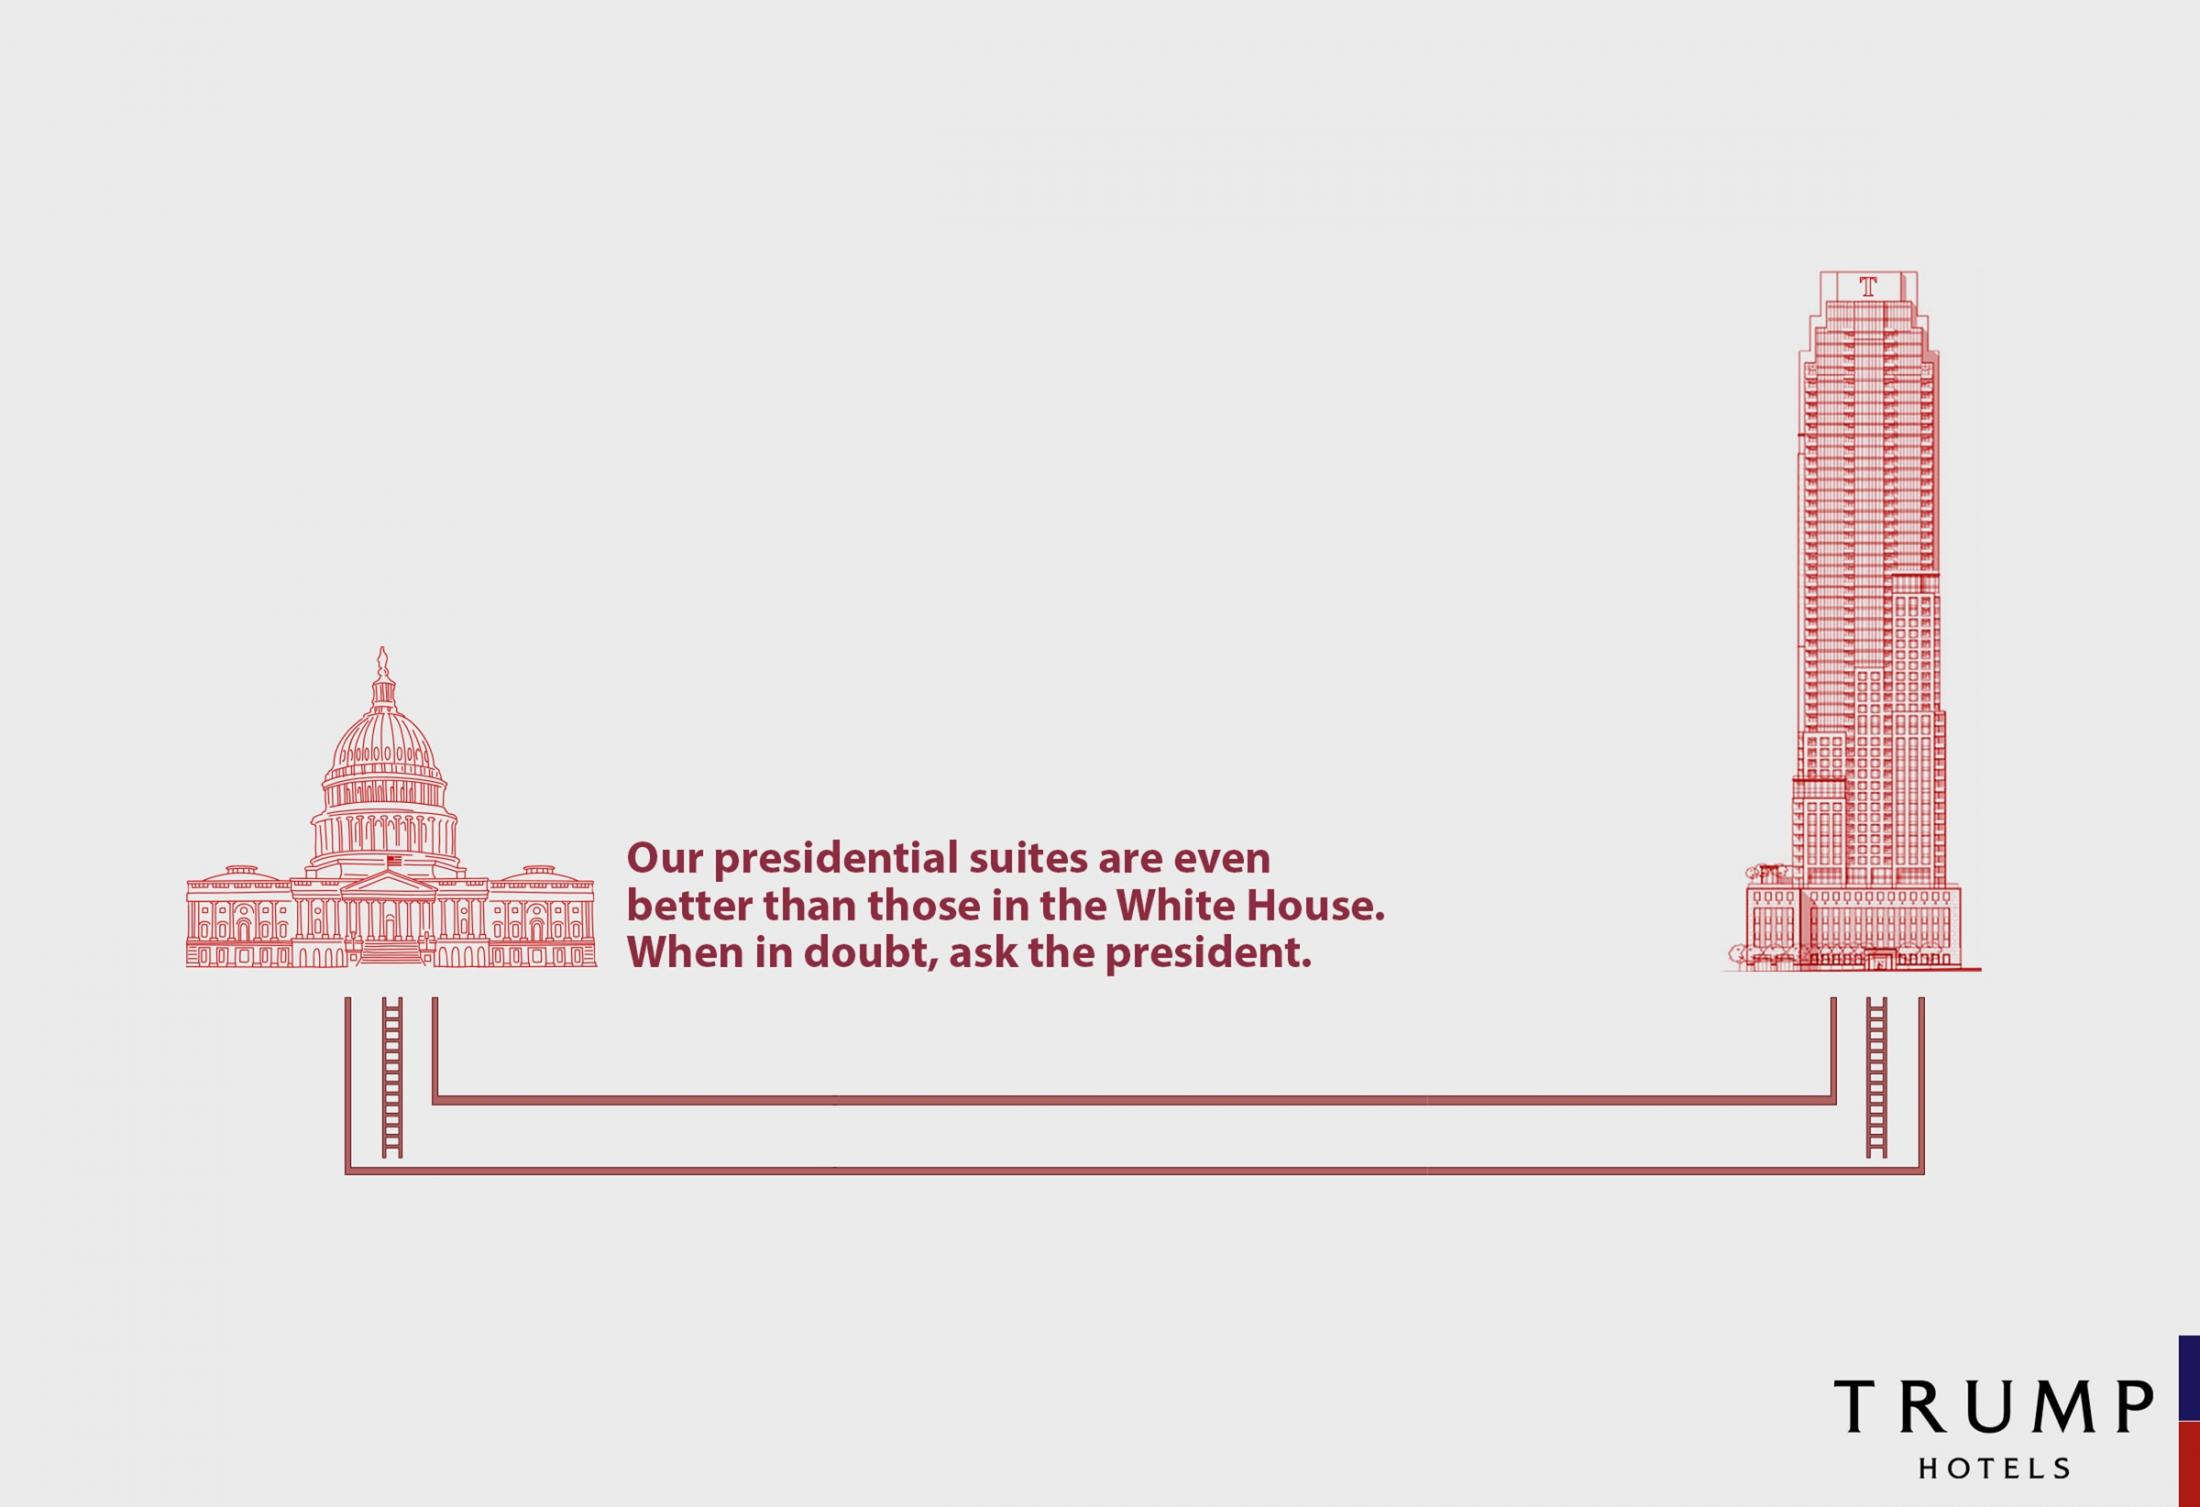 Trump Hotels: Better than the White House